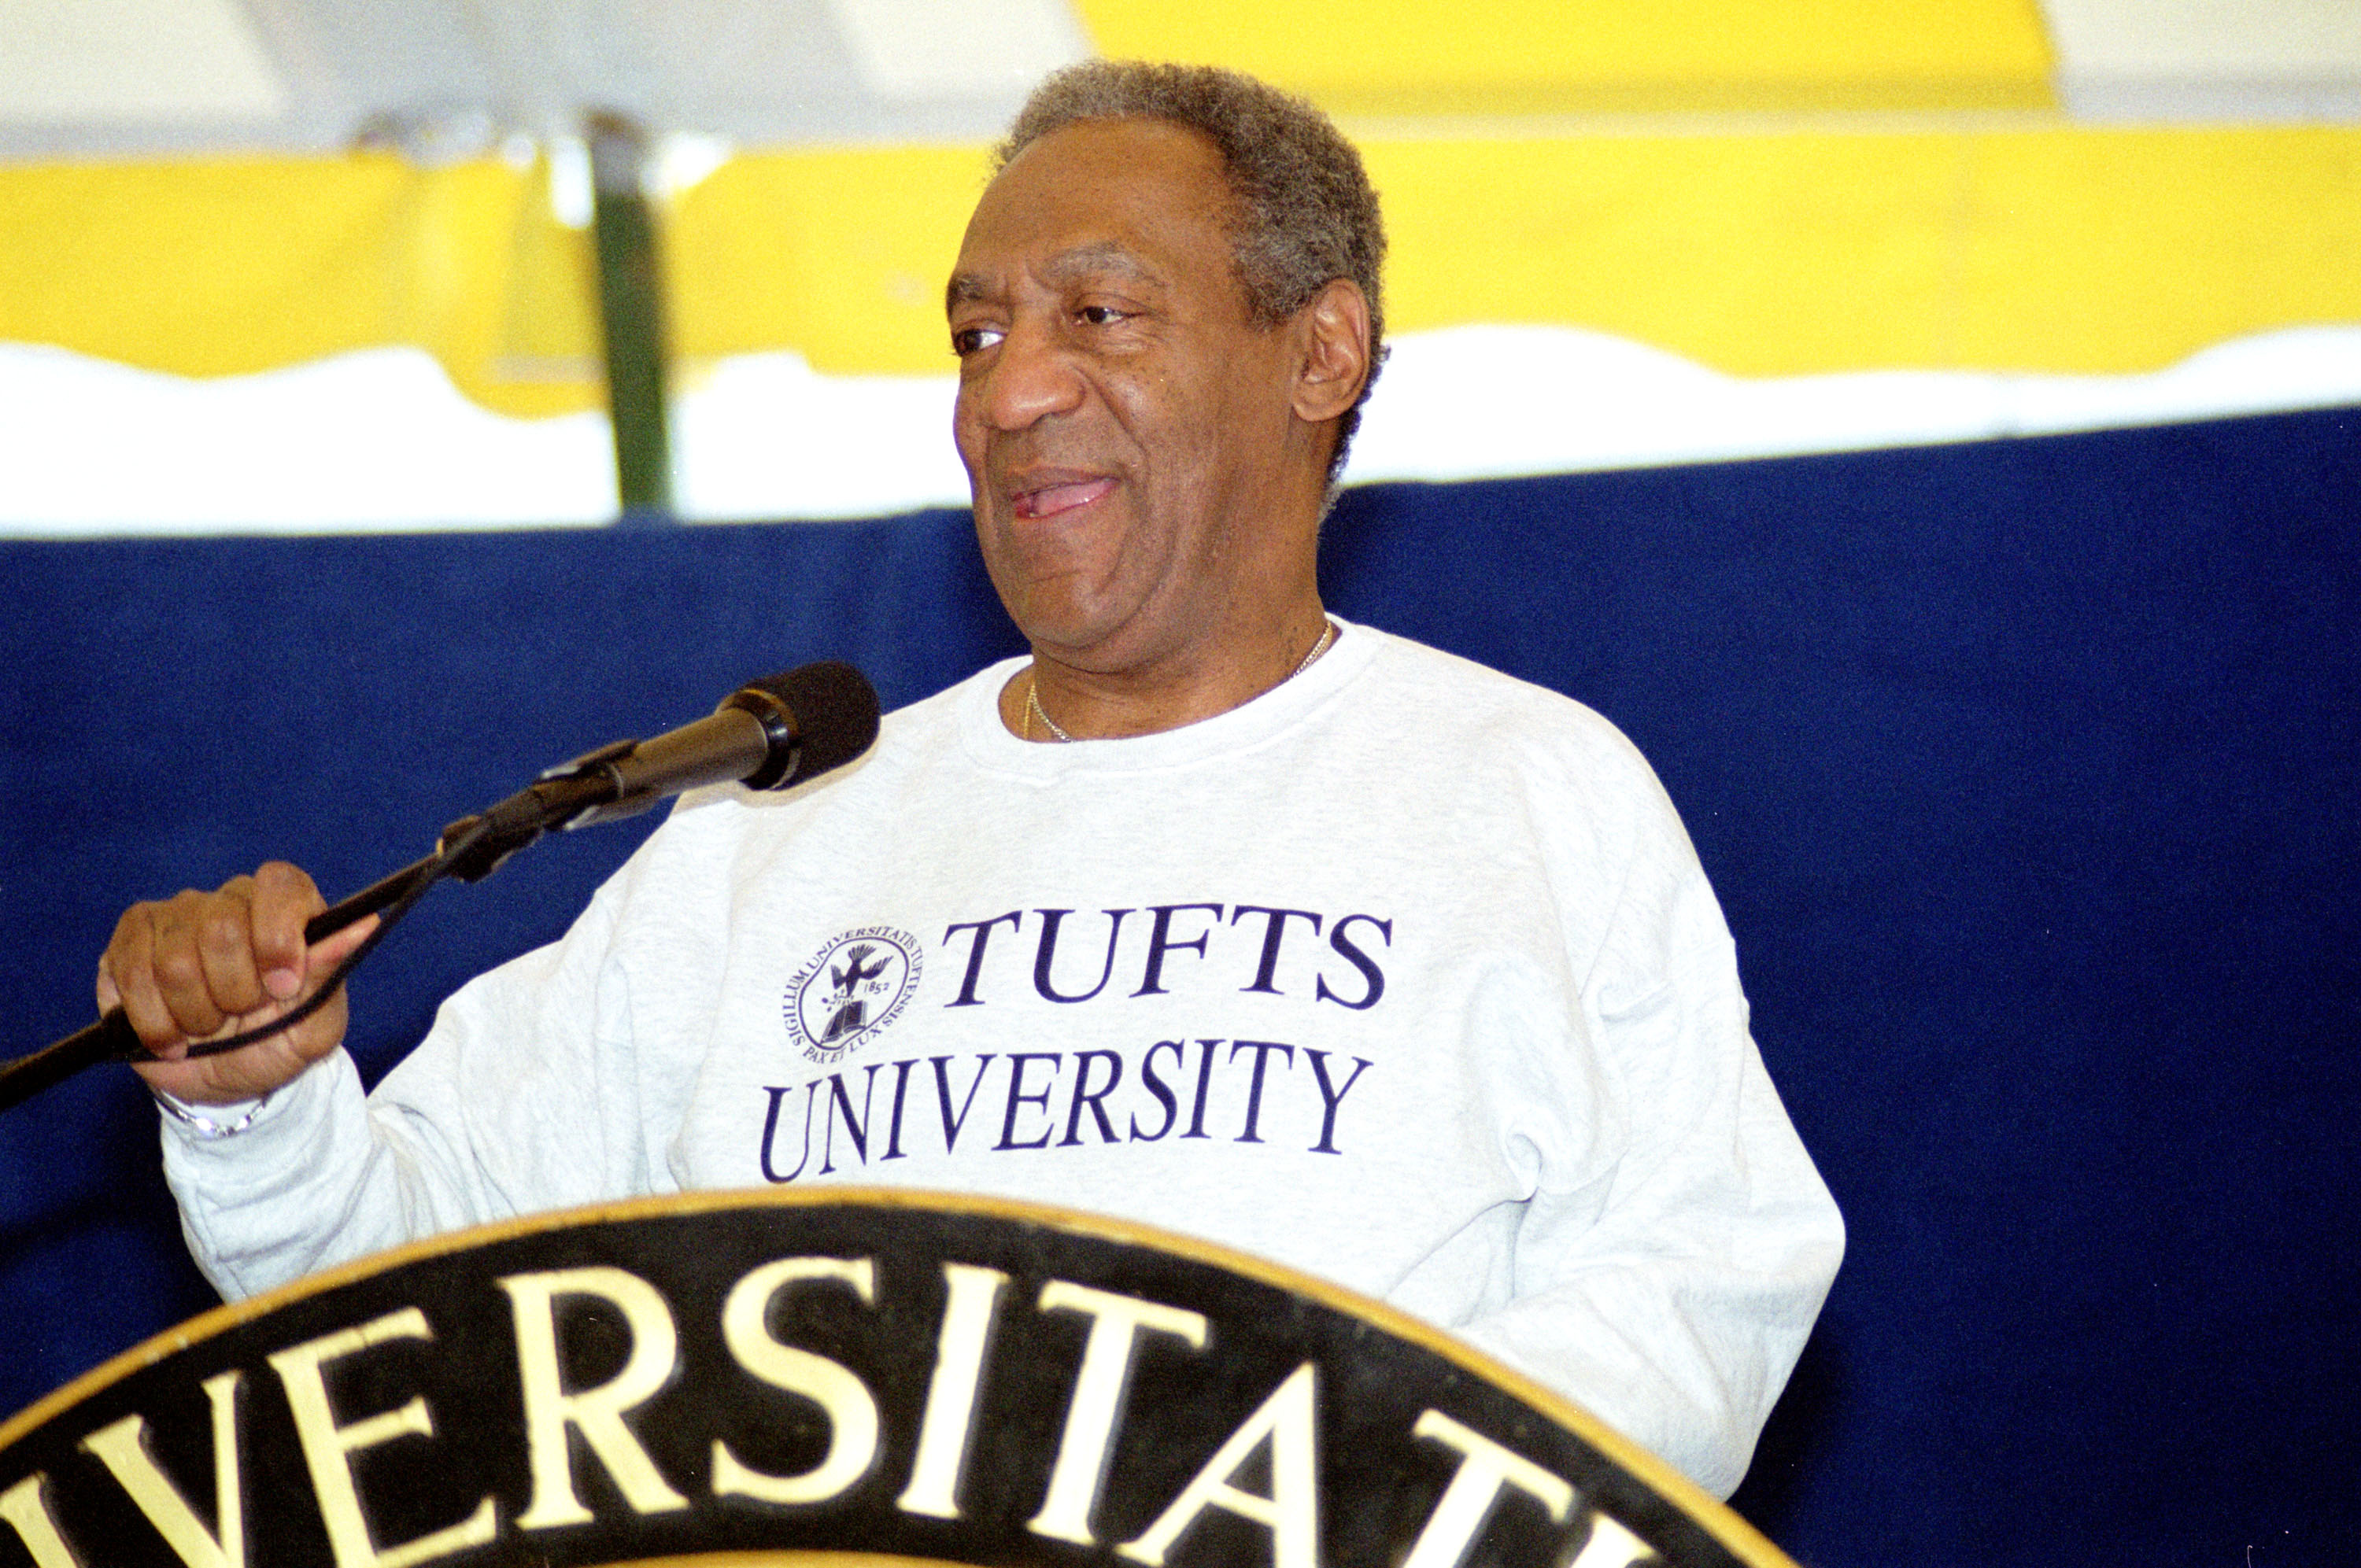 Comedian Bill Cosby speaks to graduates on May 21, 2000 after receiving an honorary degree from Tufts University in Medford, MA.